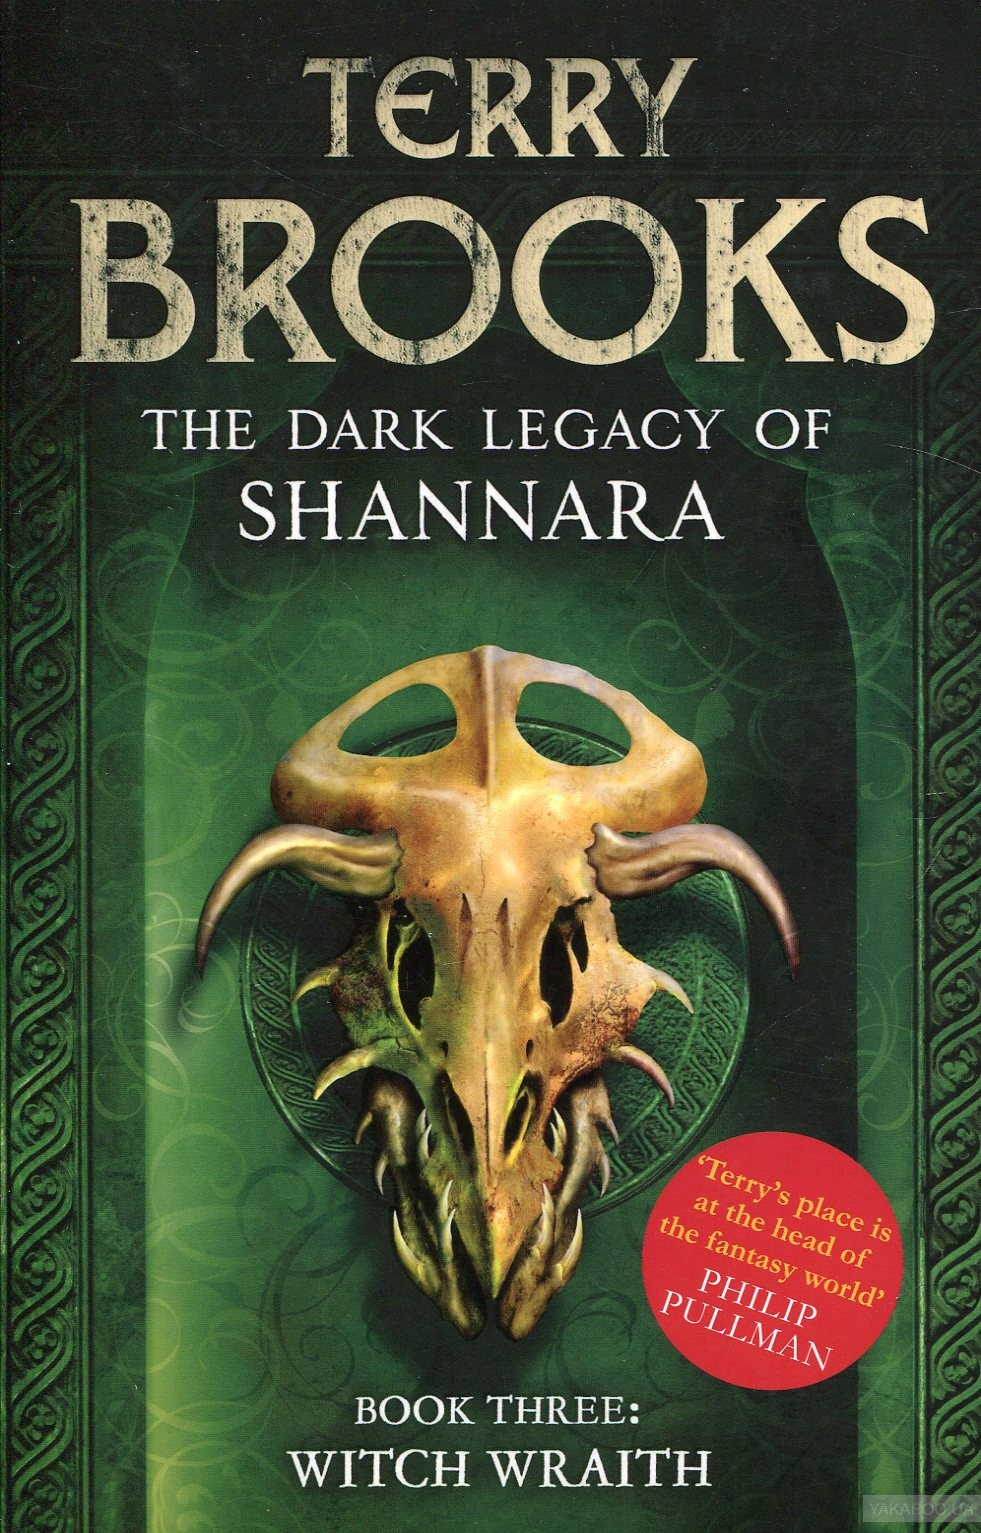 Dark Legacy of Shannara: Witch Wraith (book 3)